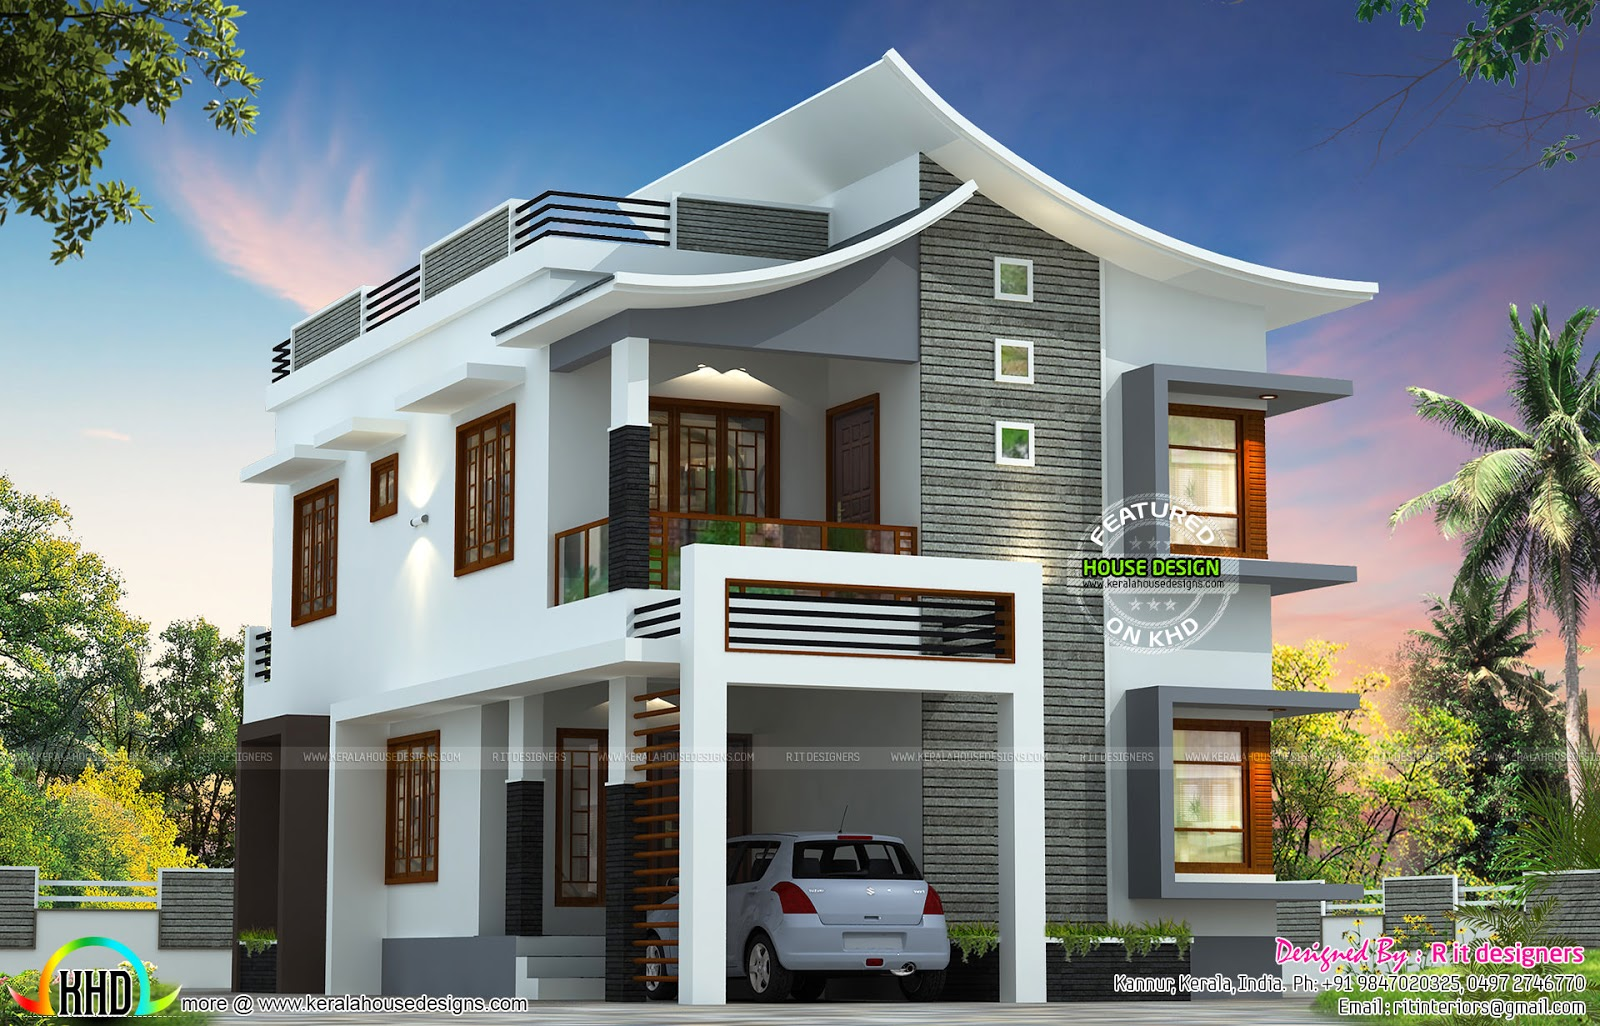 February 2016 kerala home design and floor plans for Home design ideas 2016